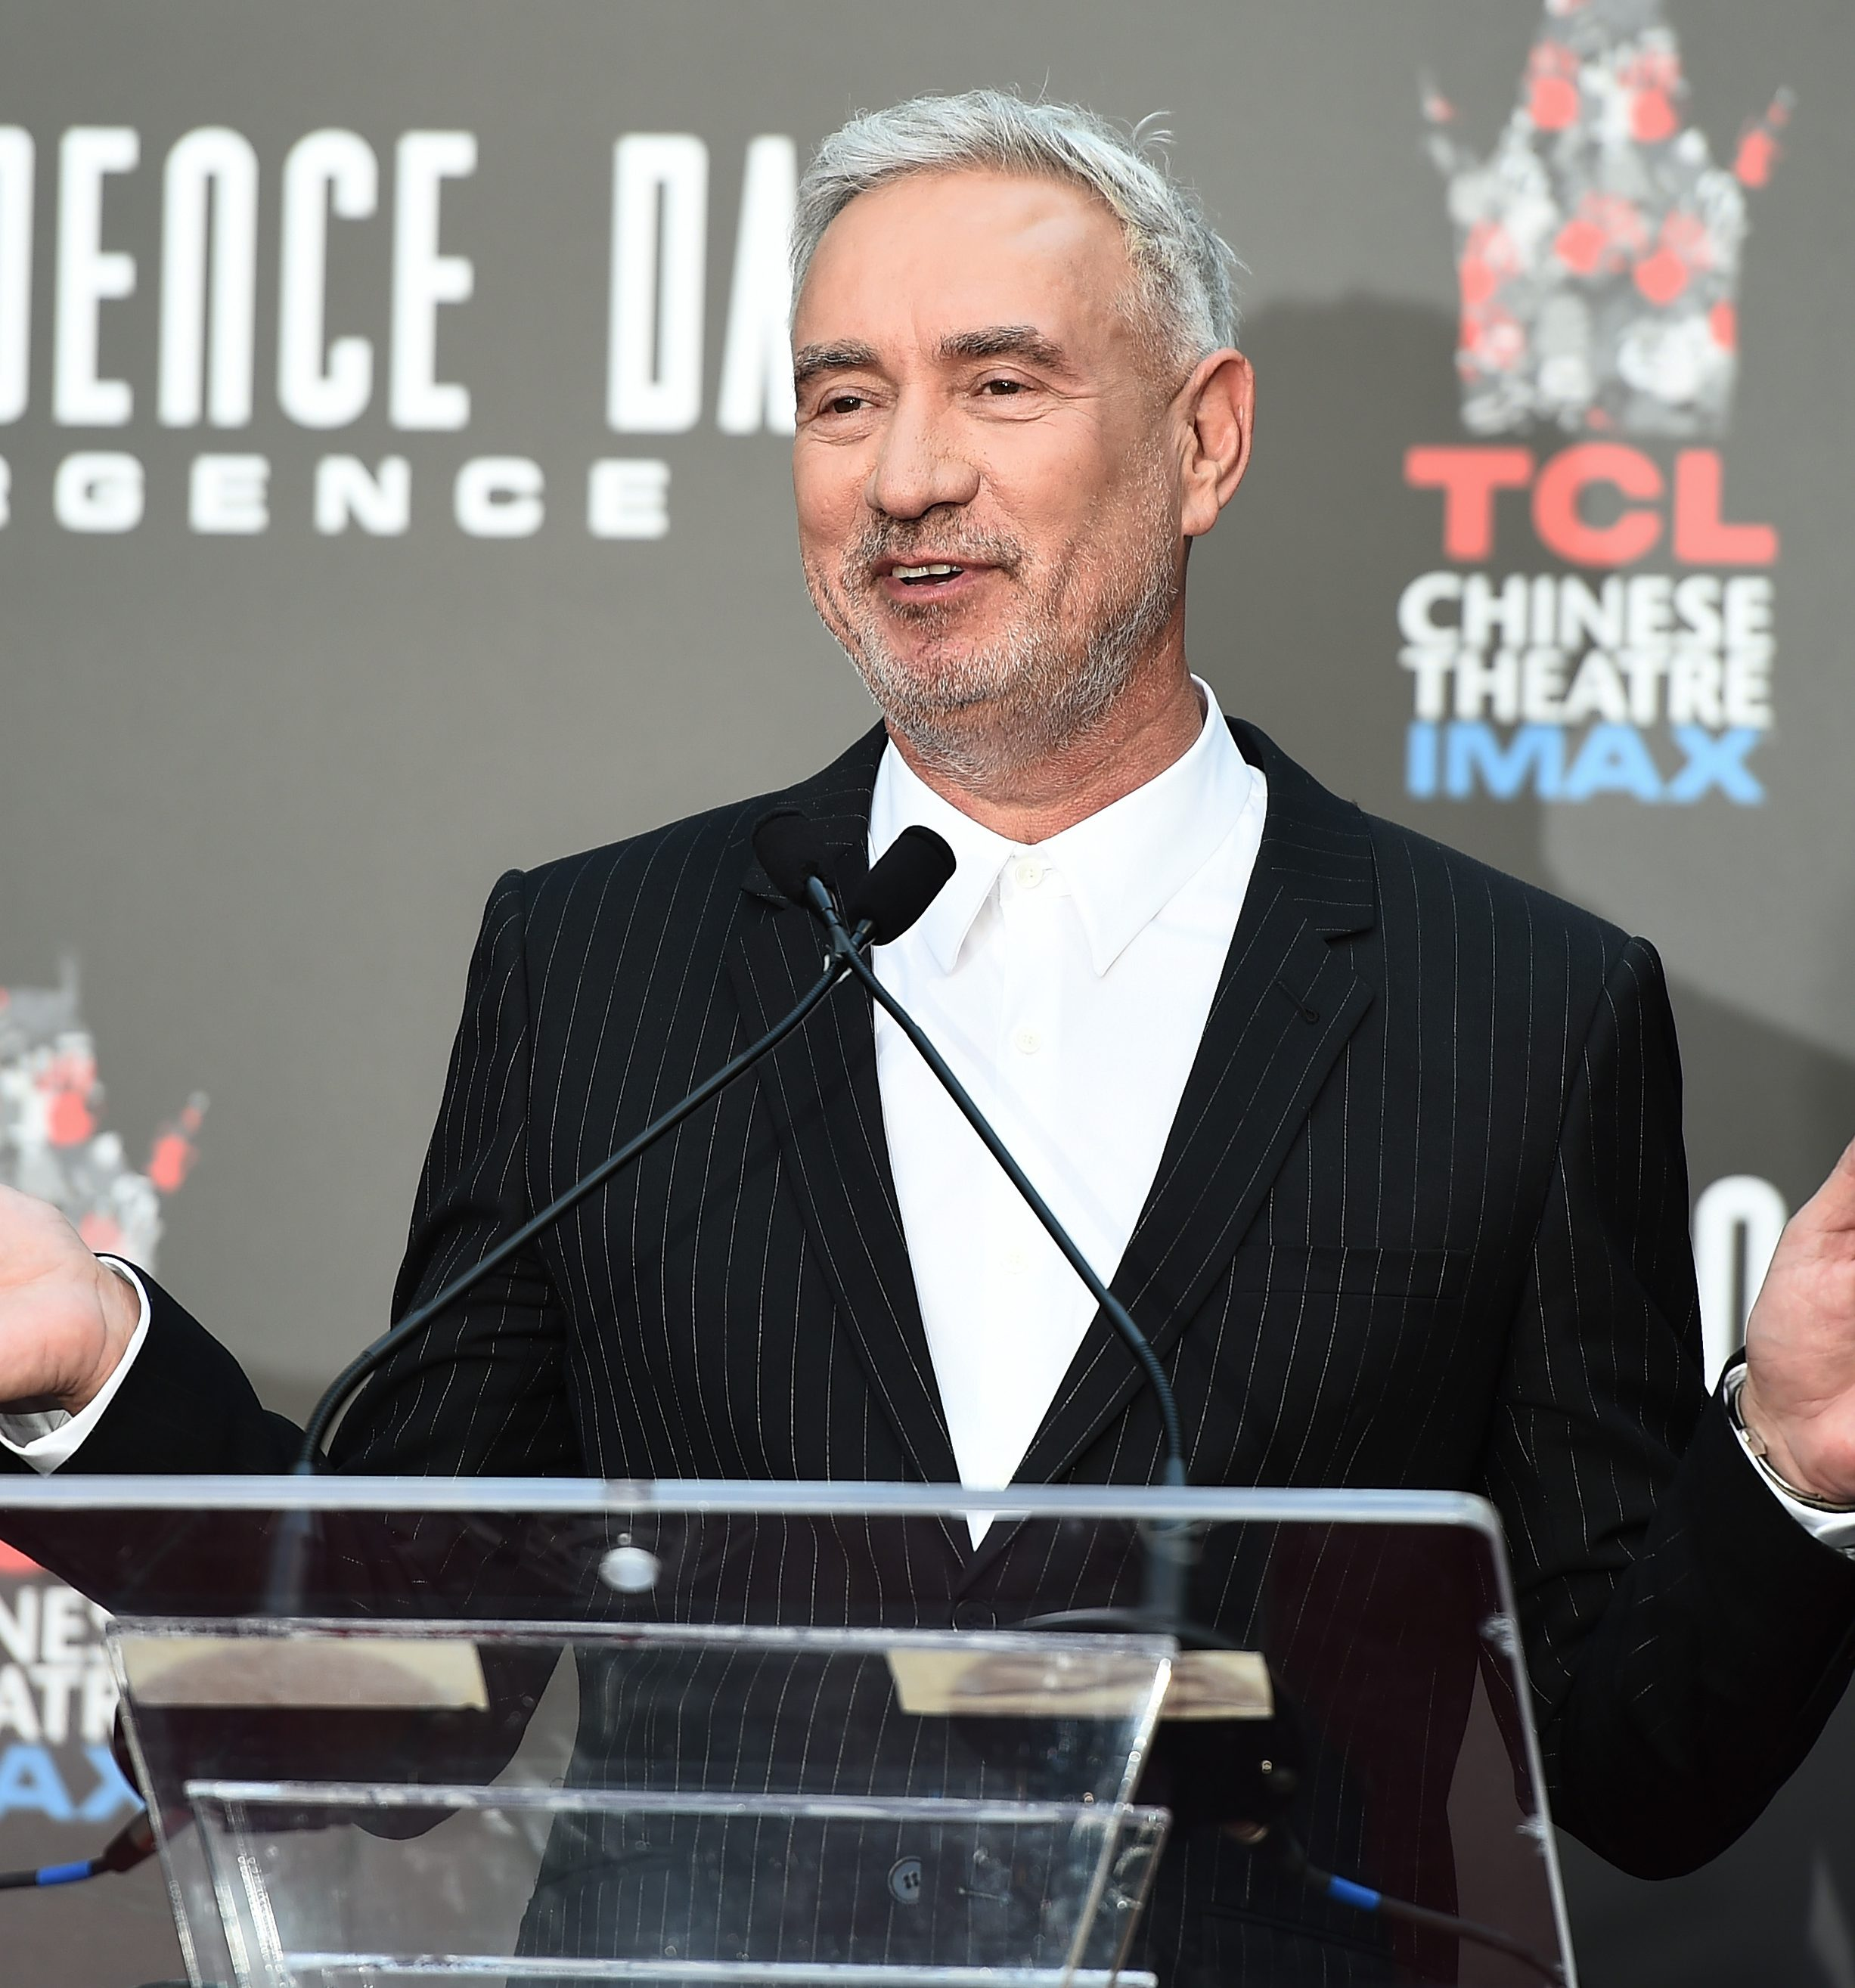 roland emmerich e1582892624980 20 Things You Probably Didn't Know About Independence Day